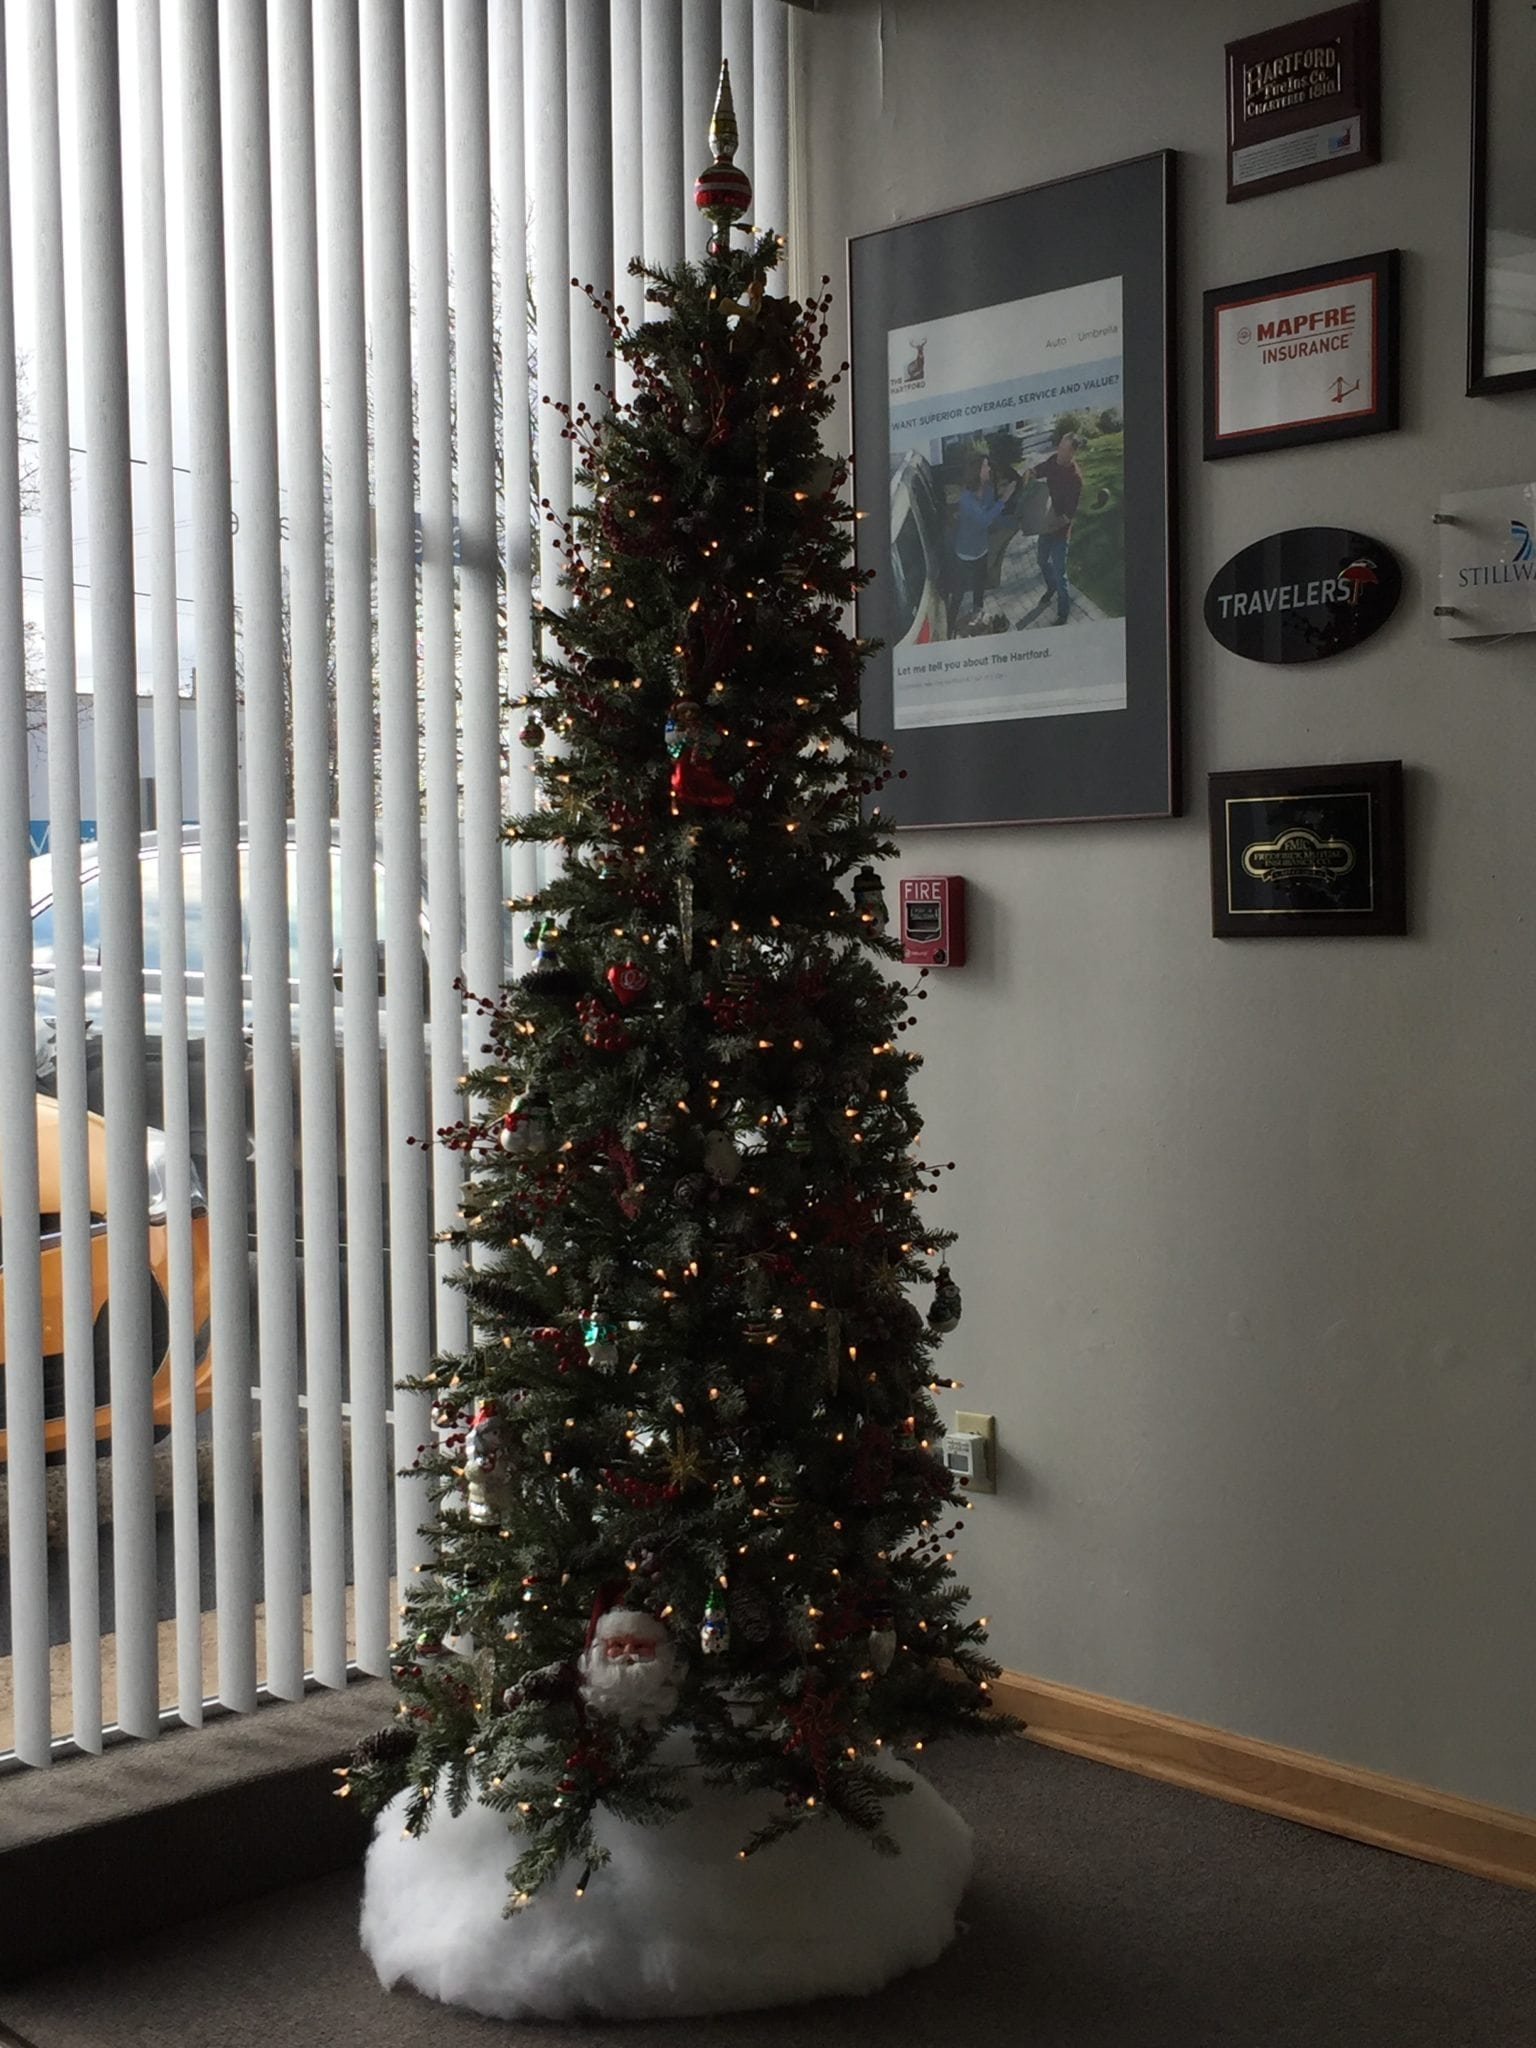 Christmas Tree 2016 - Our Christmas Tree is Up! Happy Holidays!